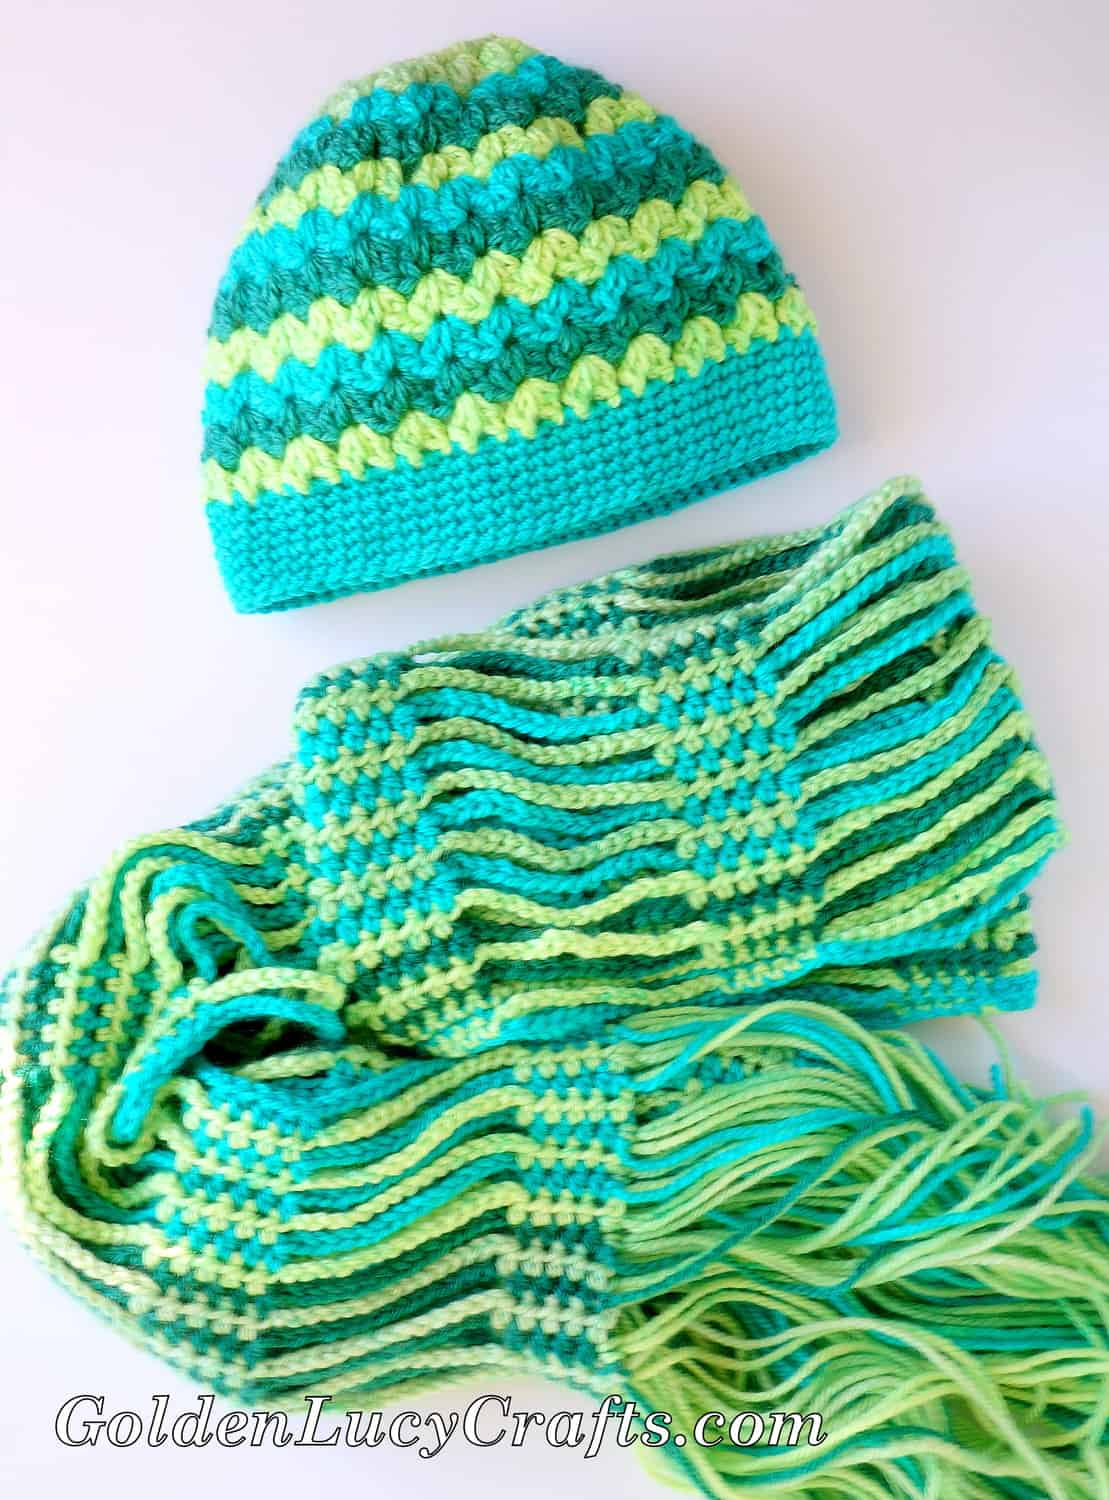 Craft Ideas With Yarn That S Not Crocheting